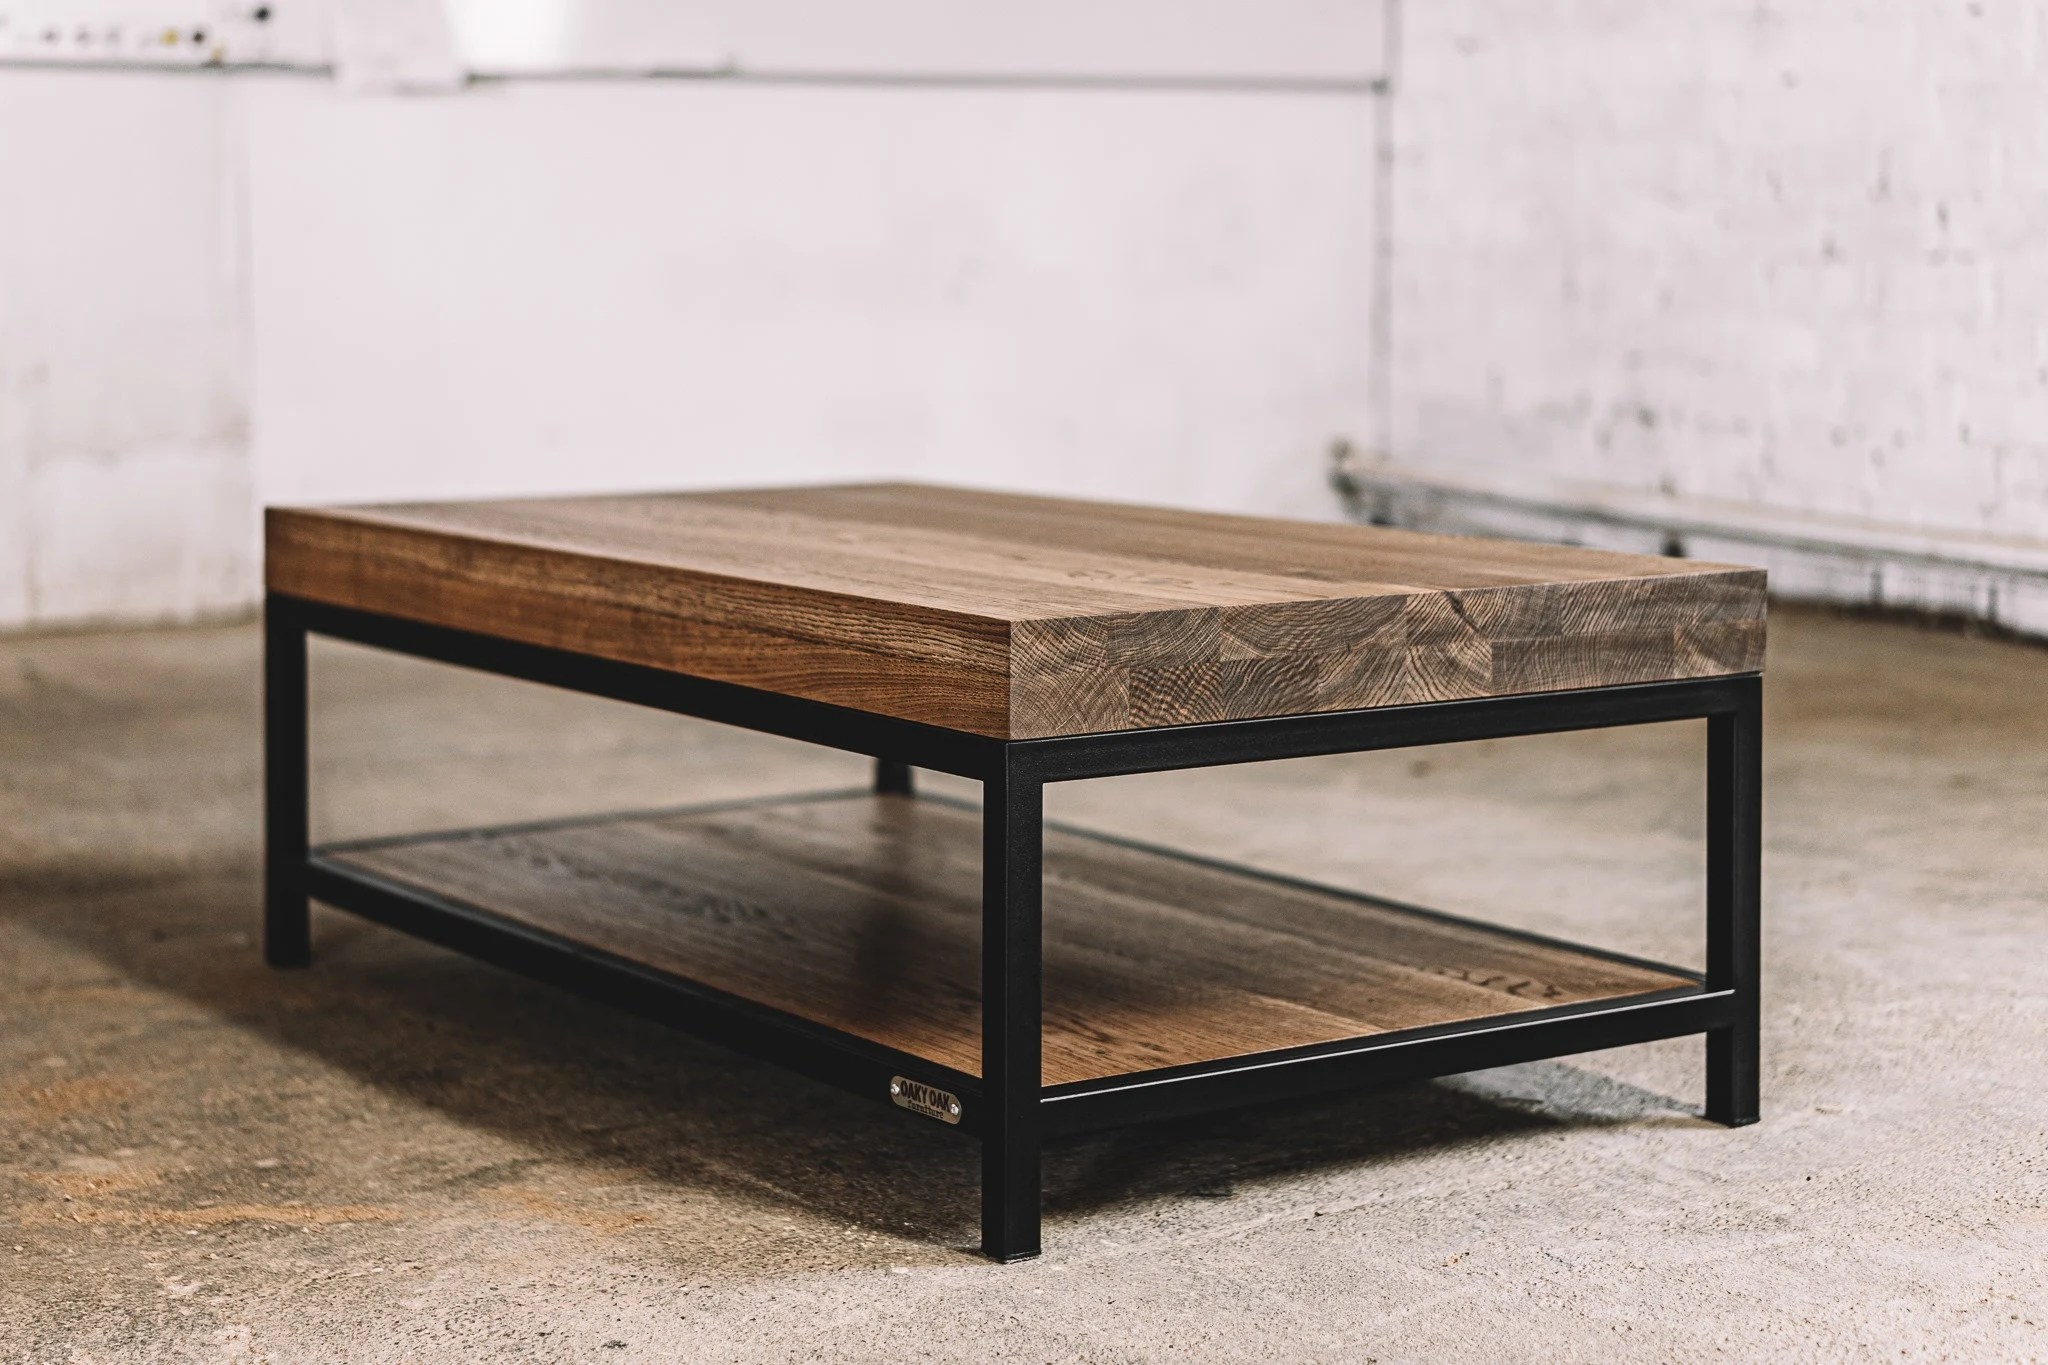 coffee table industrial furniture wood table wood furniture rustic furniture home decor rustic home decor industrial decor